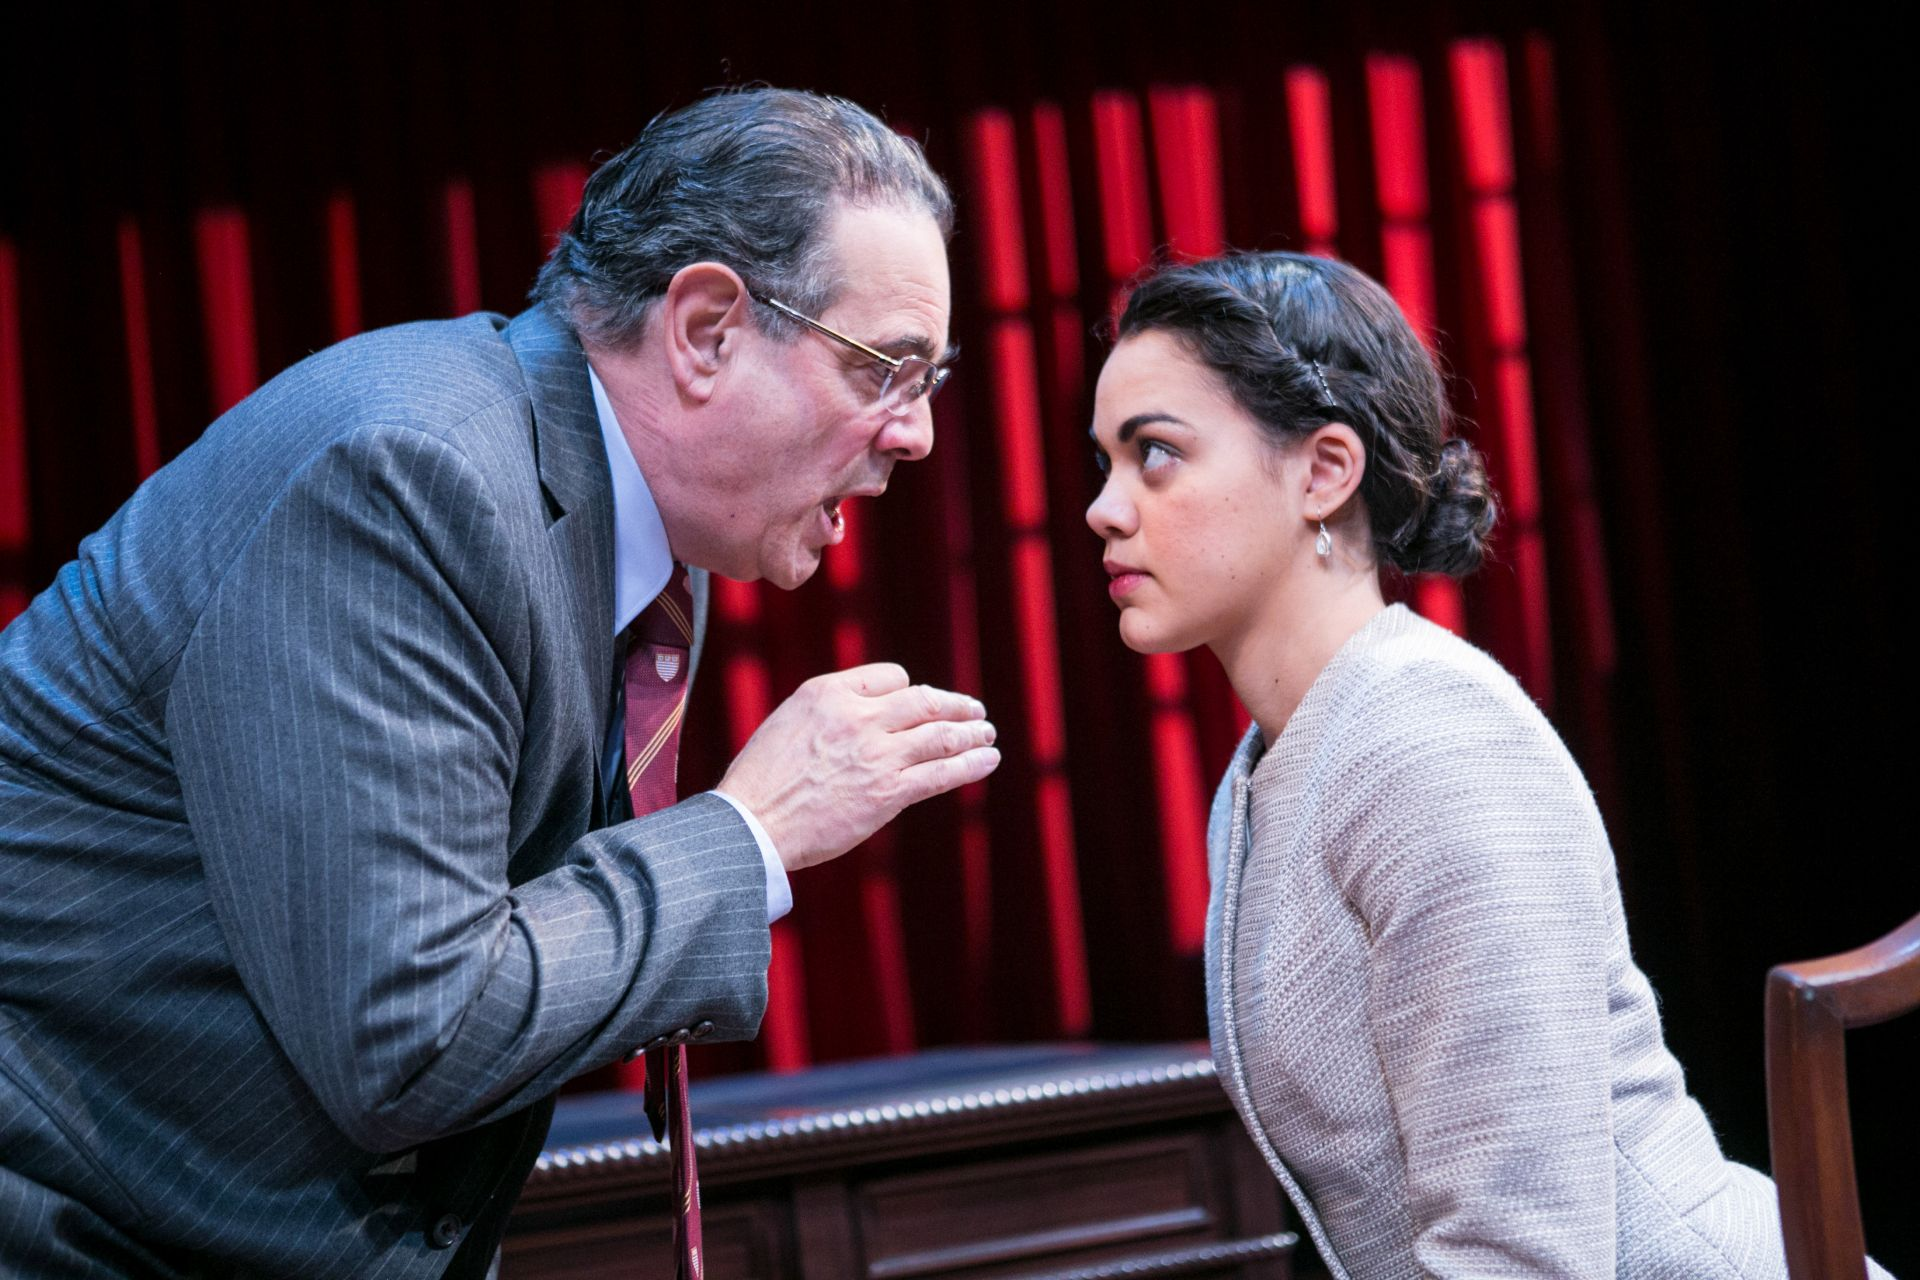 (L to R) Edward Gero as Supreme Court Justice Antonin Scalia and Kerry Warren as Cat in The Originalist at Arena Stage at the Mead Center for American Theater March 6-April 26, 2015. Photo by C. Stanley Photography.